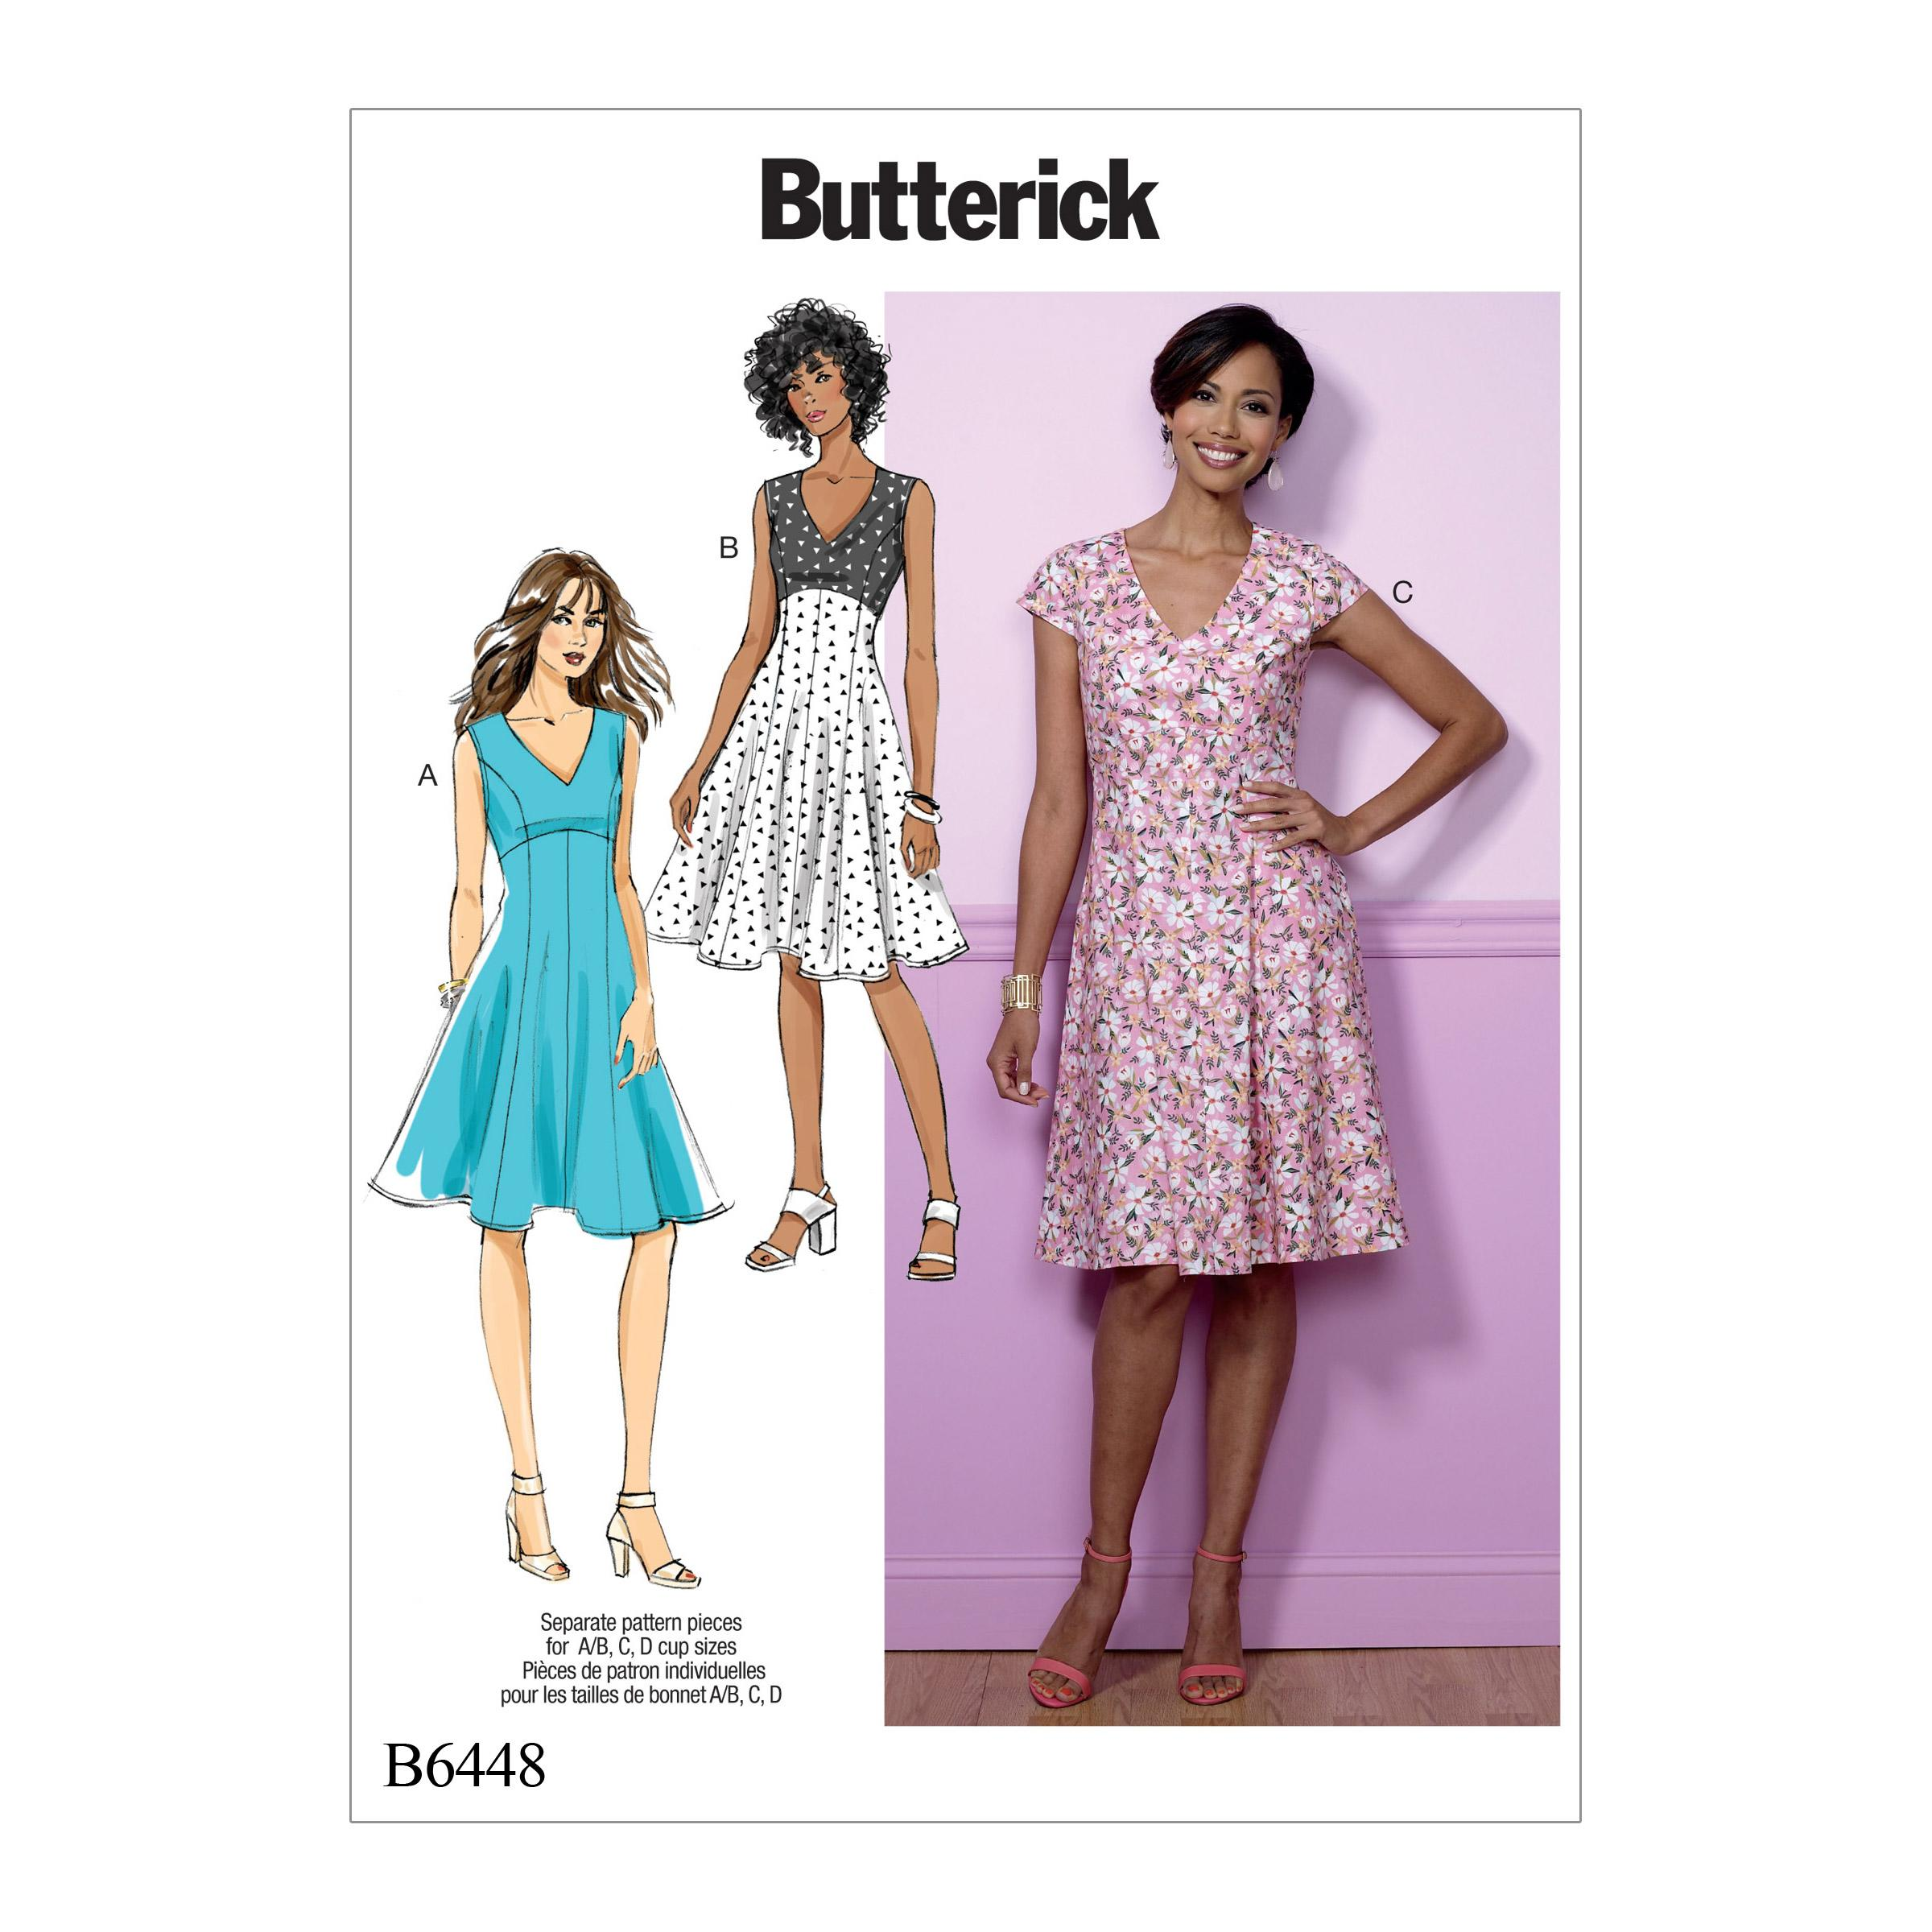 Butterick B6448 Misses' Fit-and-Flare, Empire-Waist Dresses